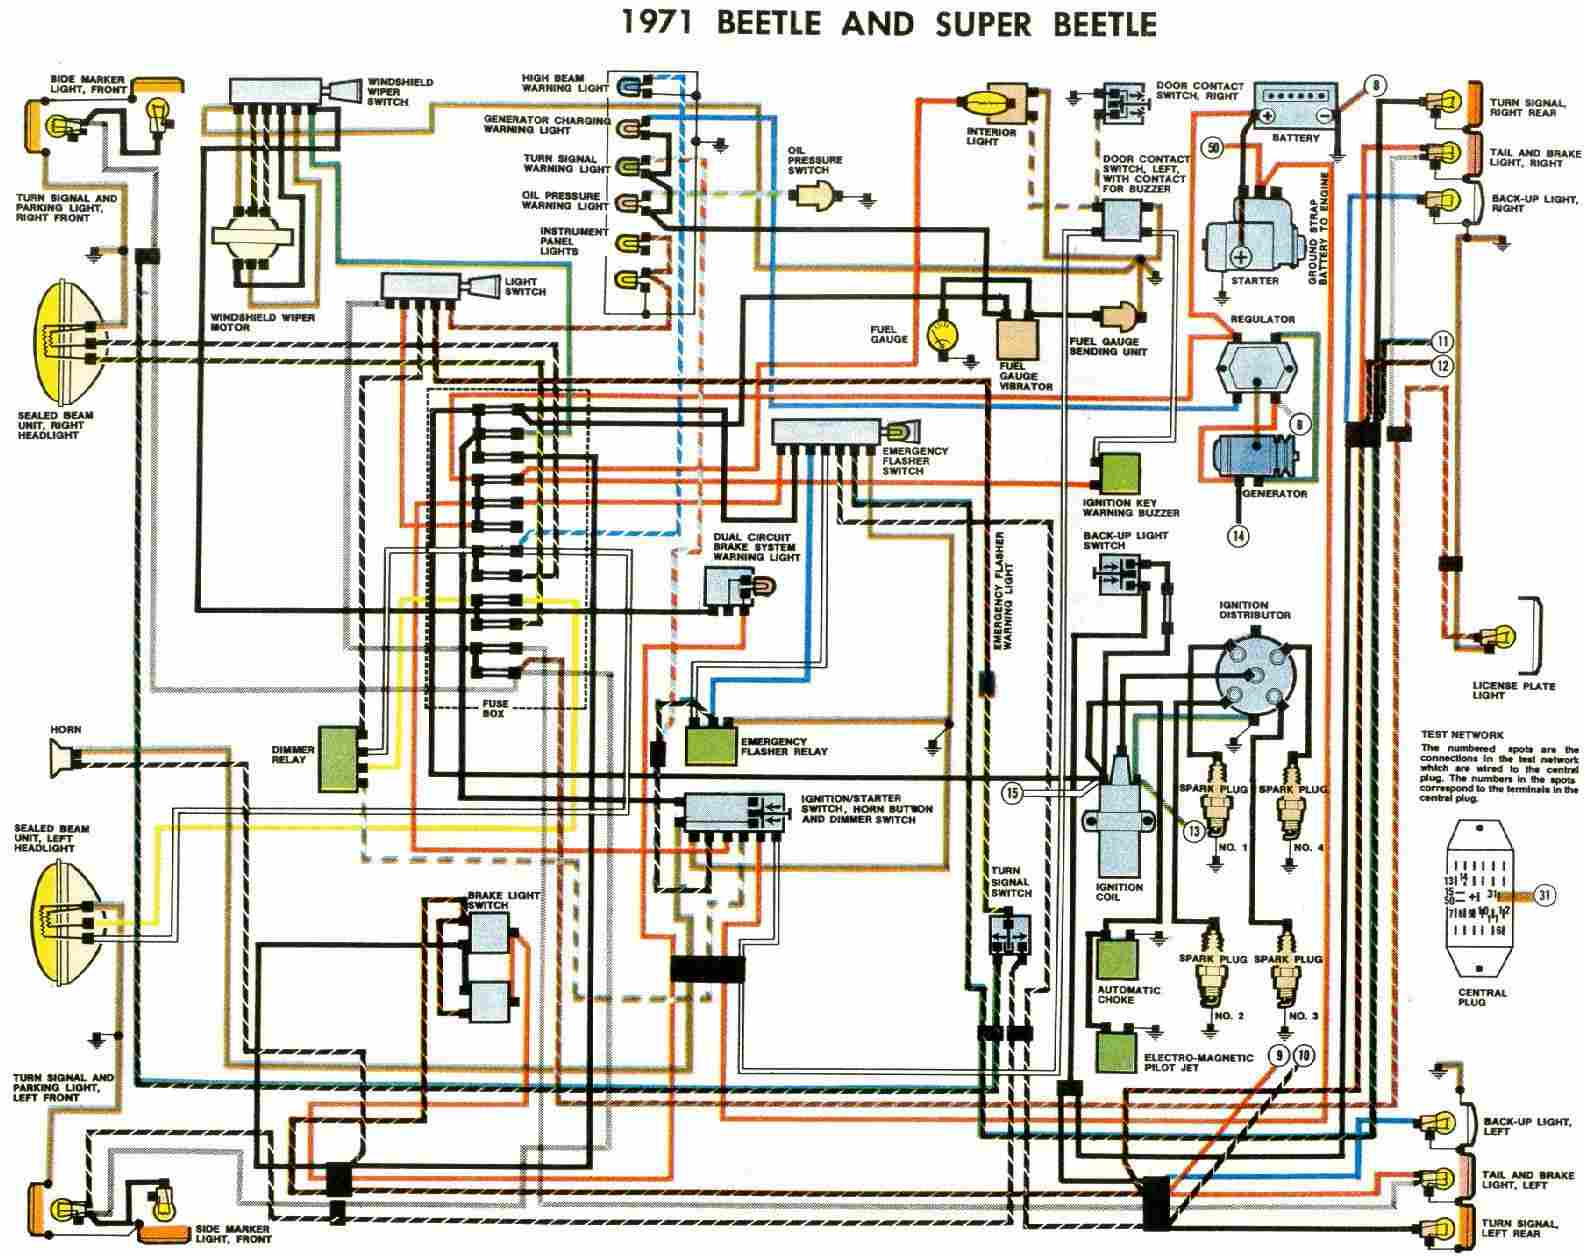 renault megane wiring diagram free download #7 on Automotive Wiring Diagrams for renault megane wiring diagram free download #7 at House Wiring Diagrams Free